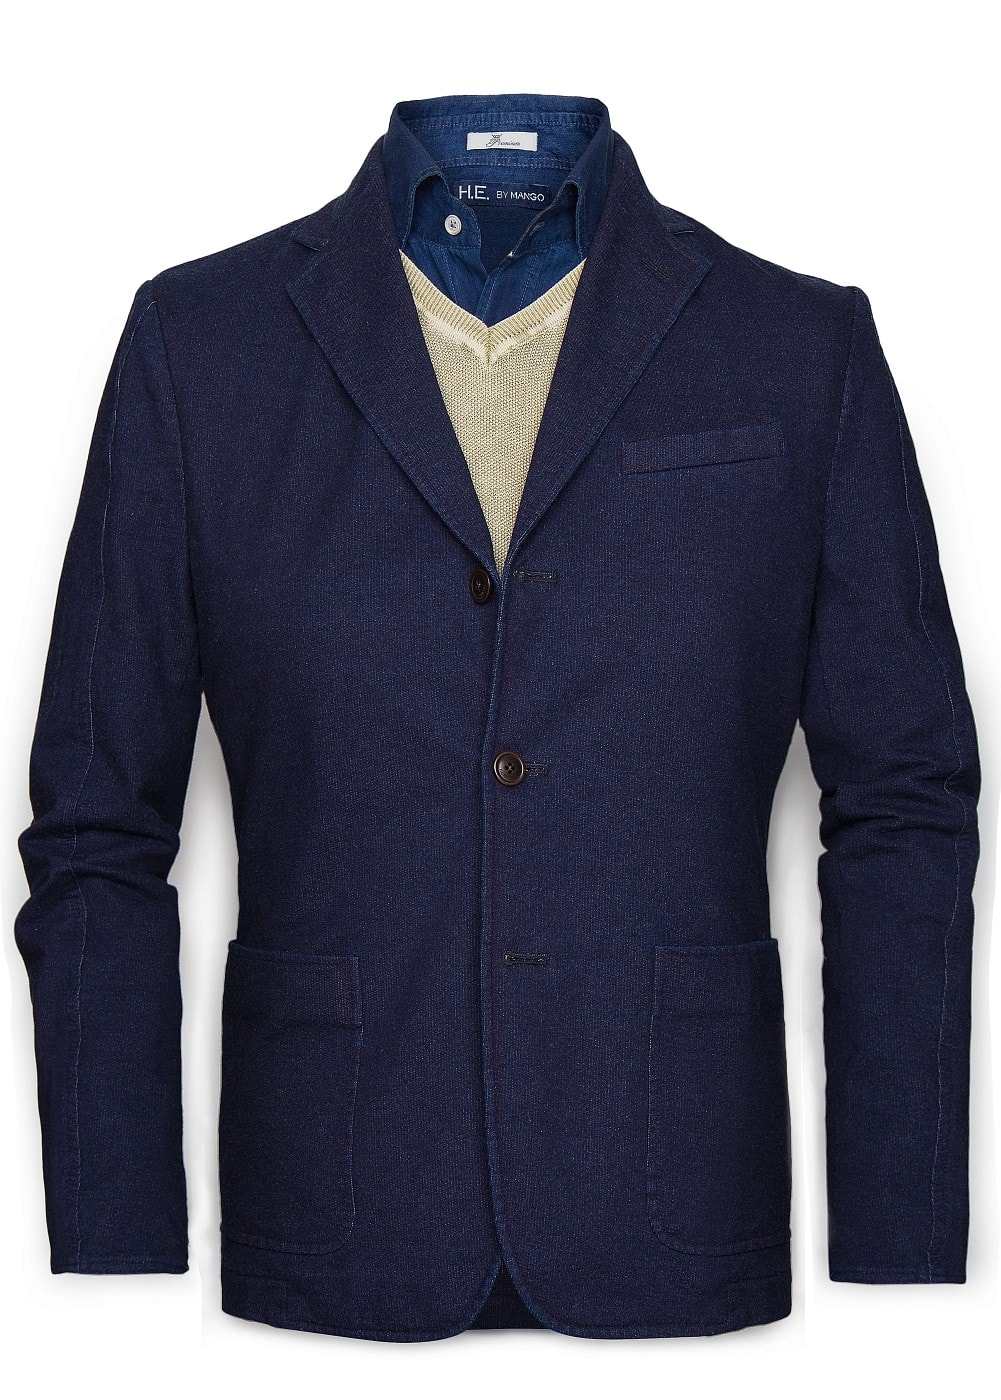 ELBOW PATCHES JERSEY BLAZER